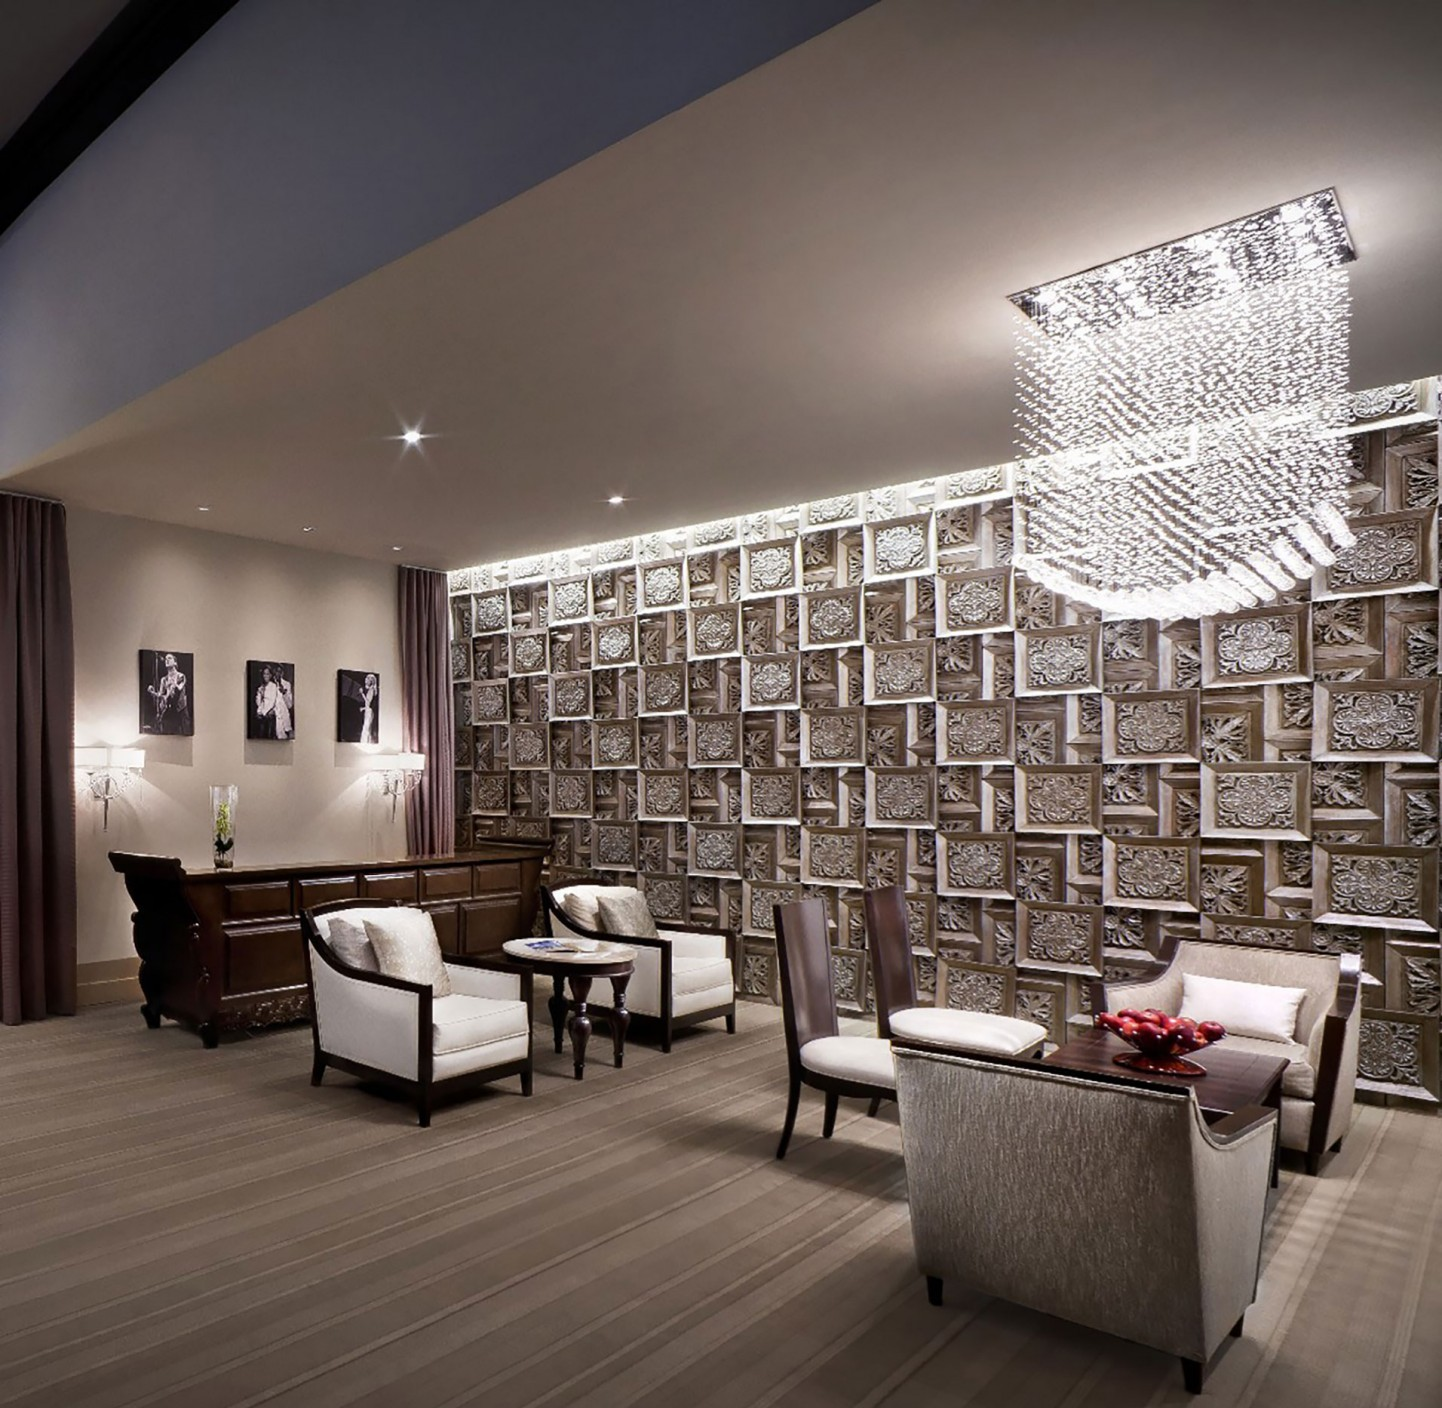 Hard rock punta cana the gettys group for Vip room interior design